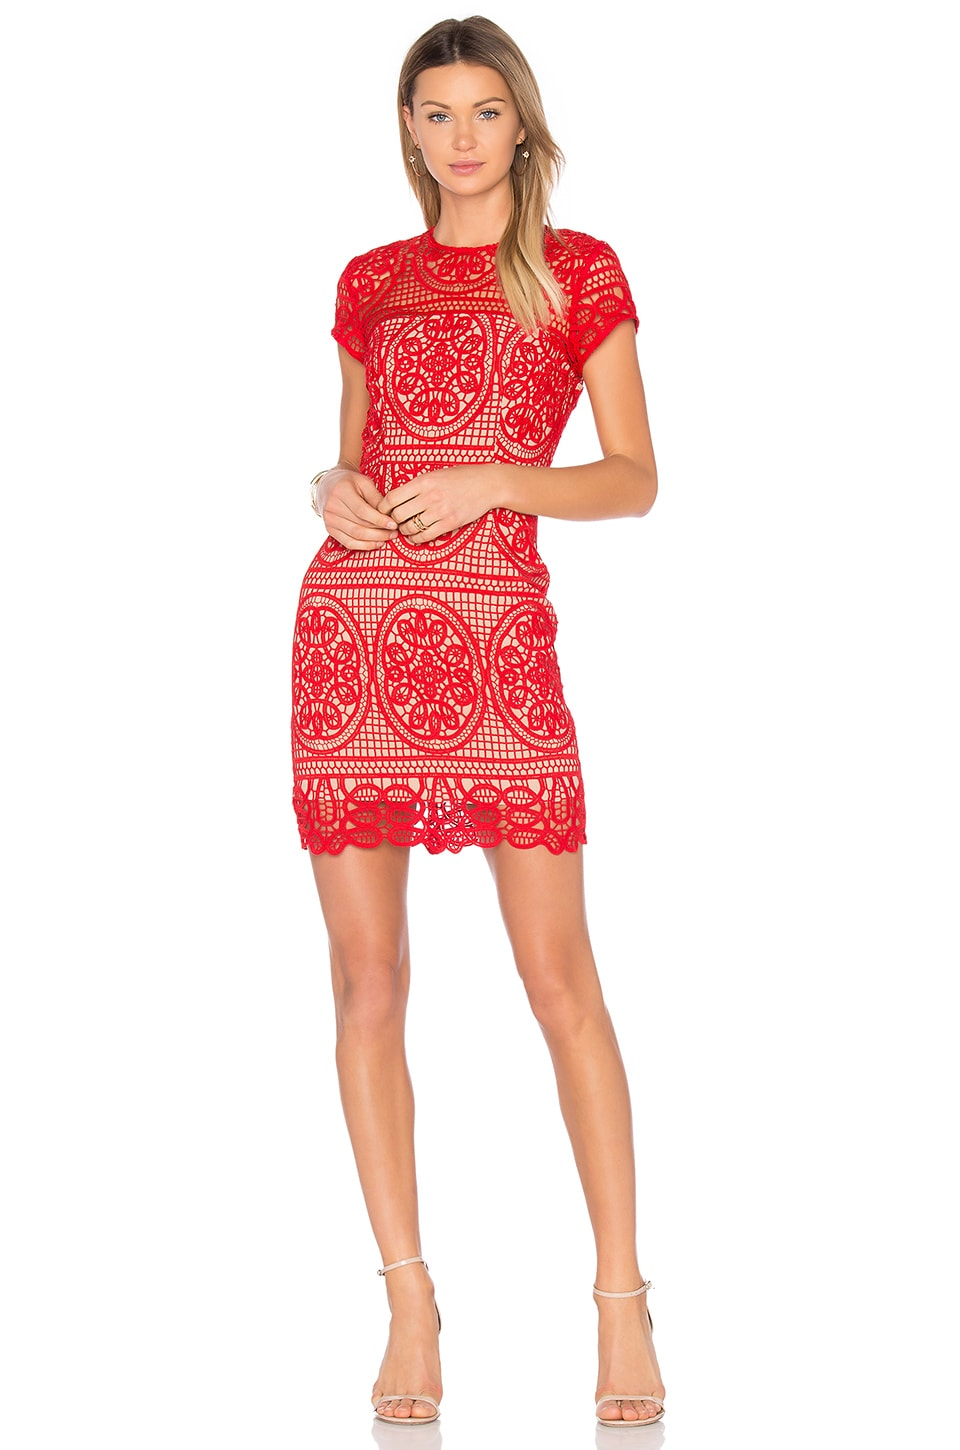 aijek Blackjack Embroidered Mini Dress in Scarlet Red